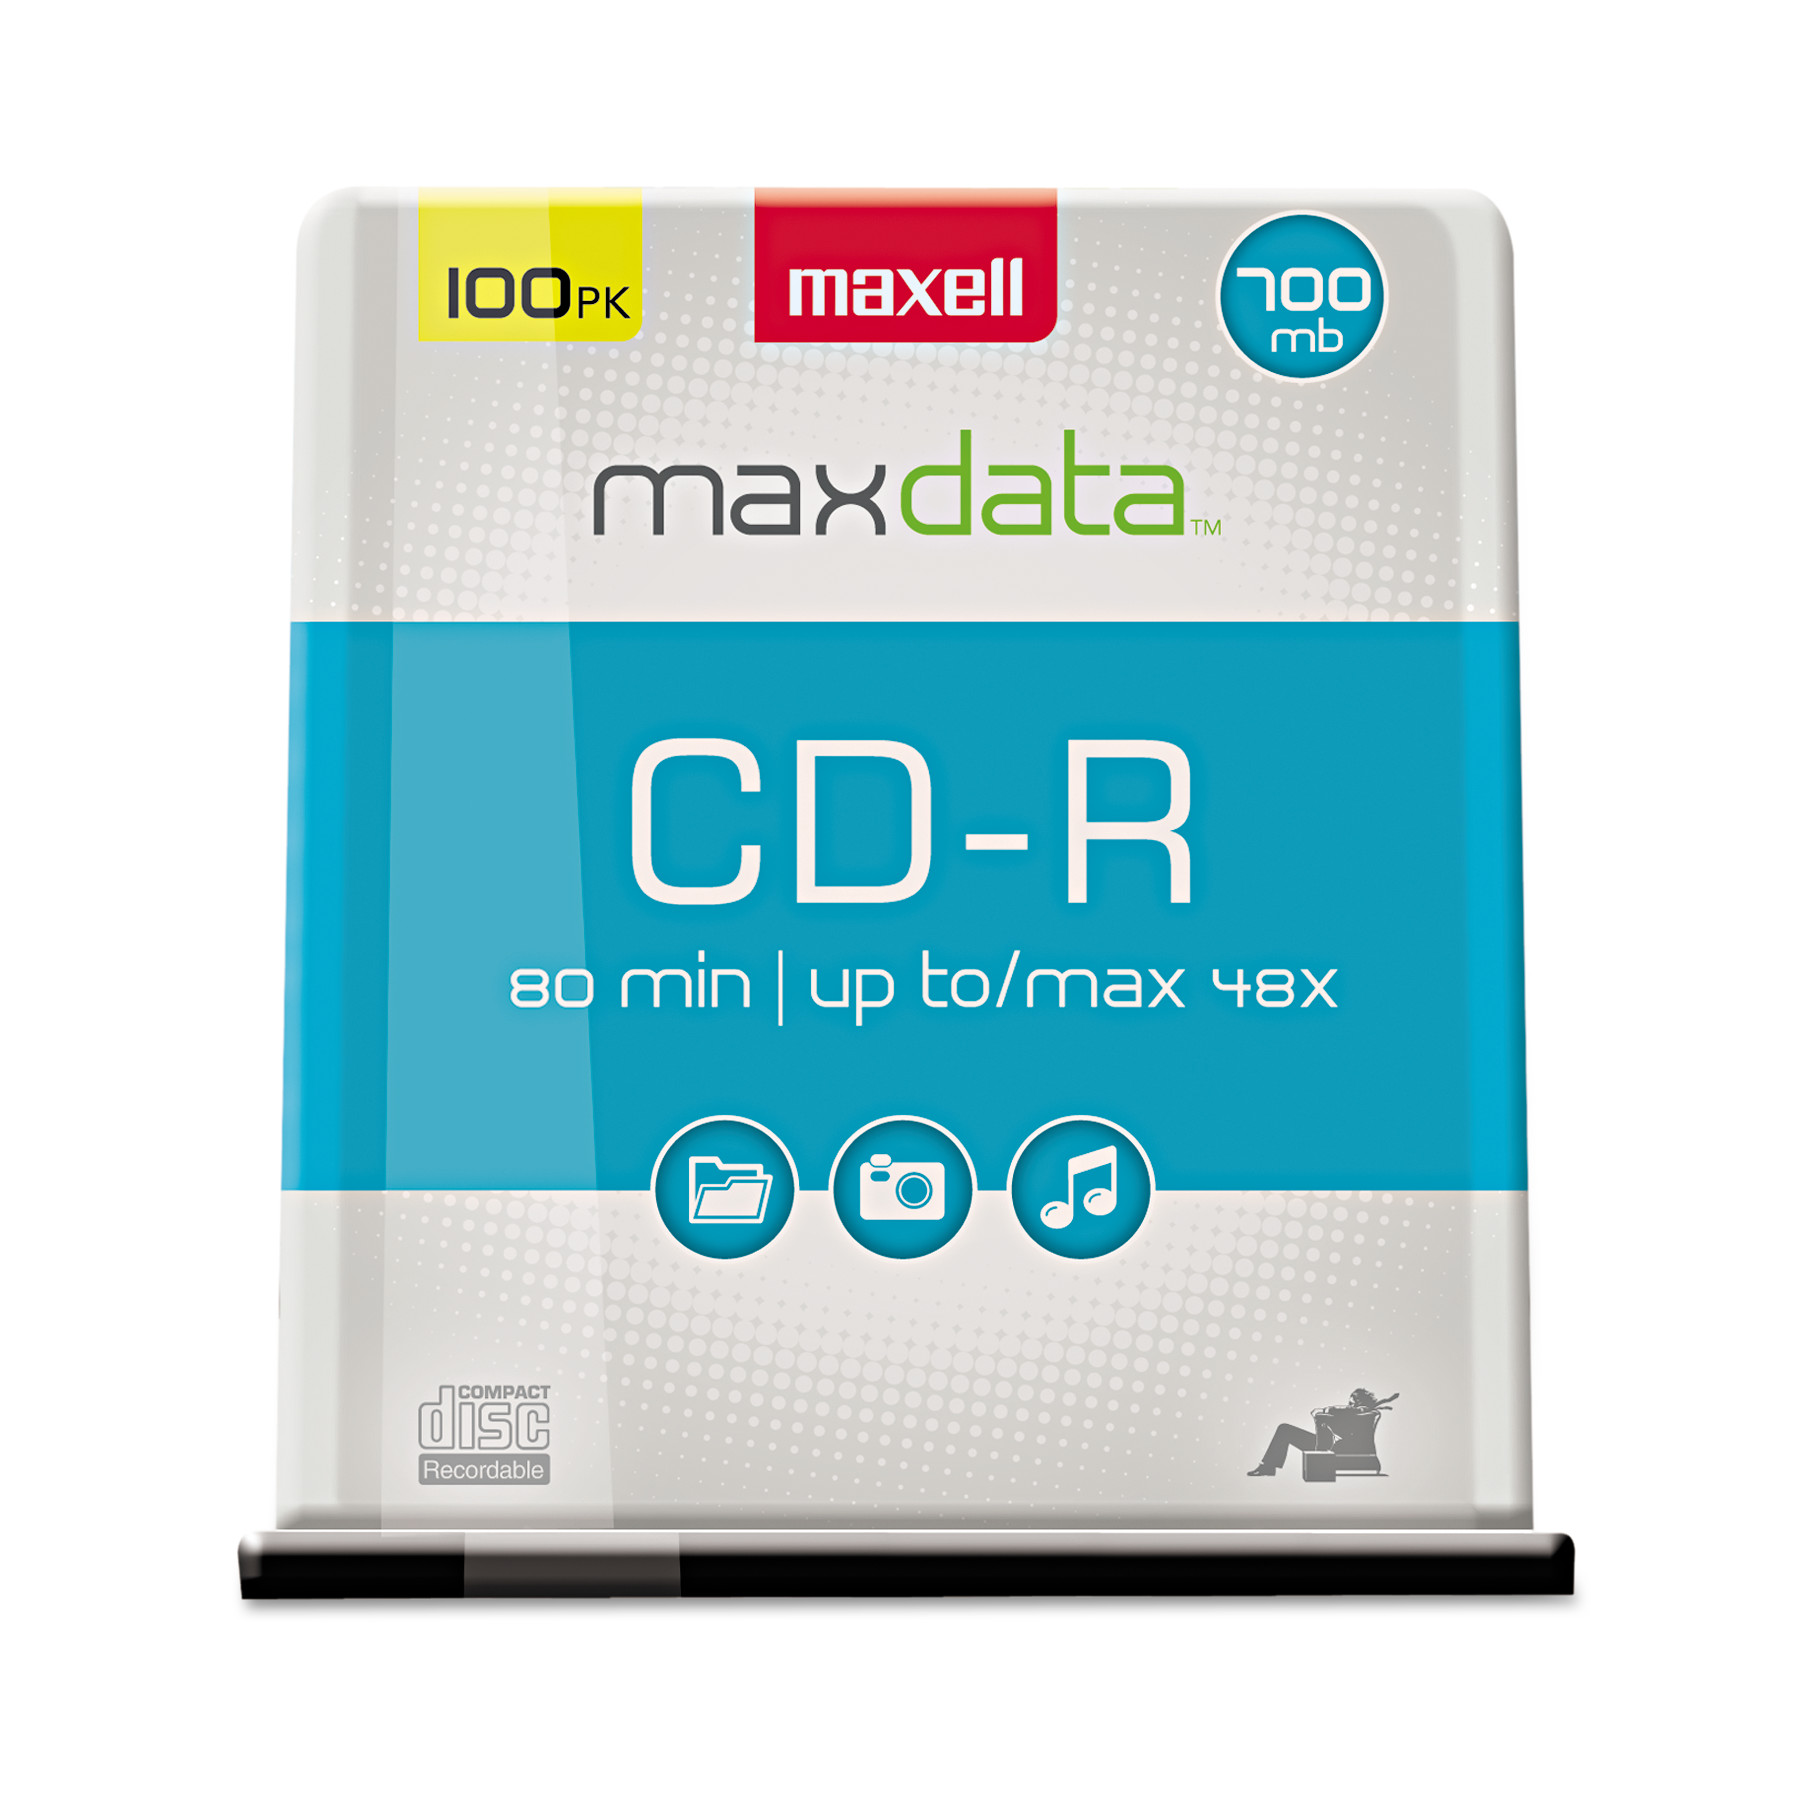 Verbatim dvd rw 4 7gb 4x with branded surface 30pk spindle 4 7gb - Maxell Cd R Discs 700mb 80min 48x Spindle Silver